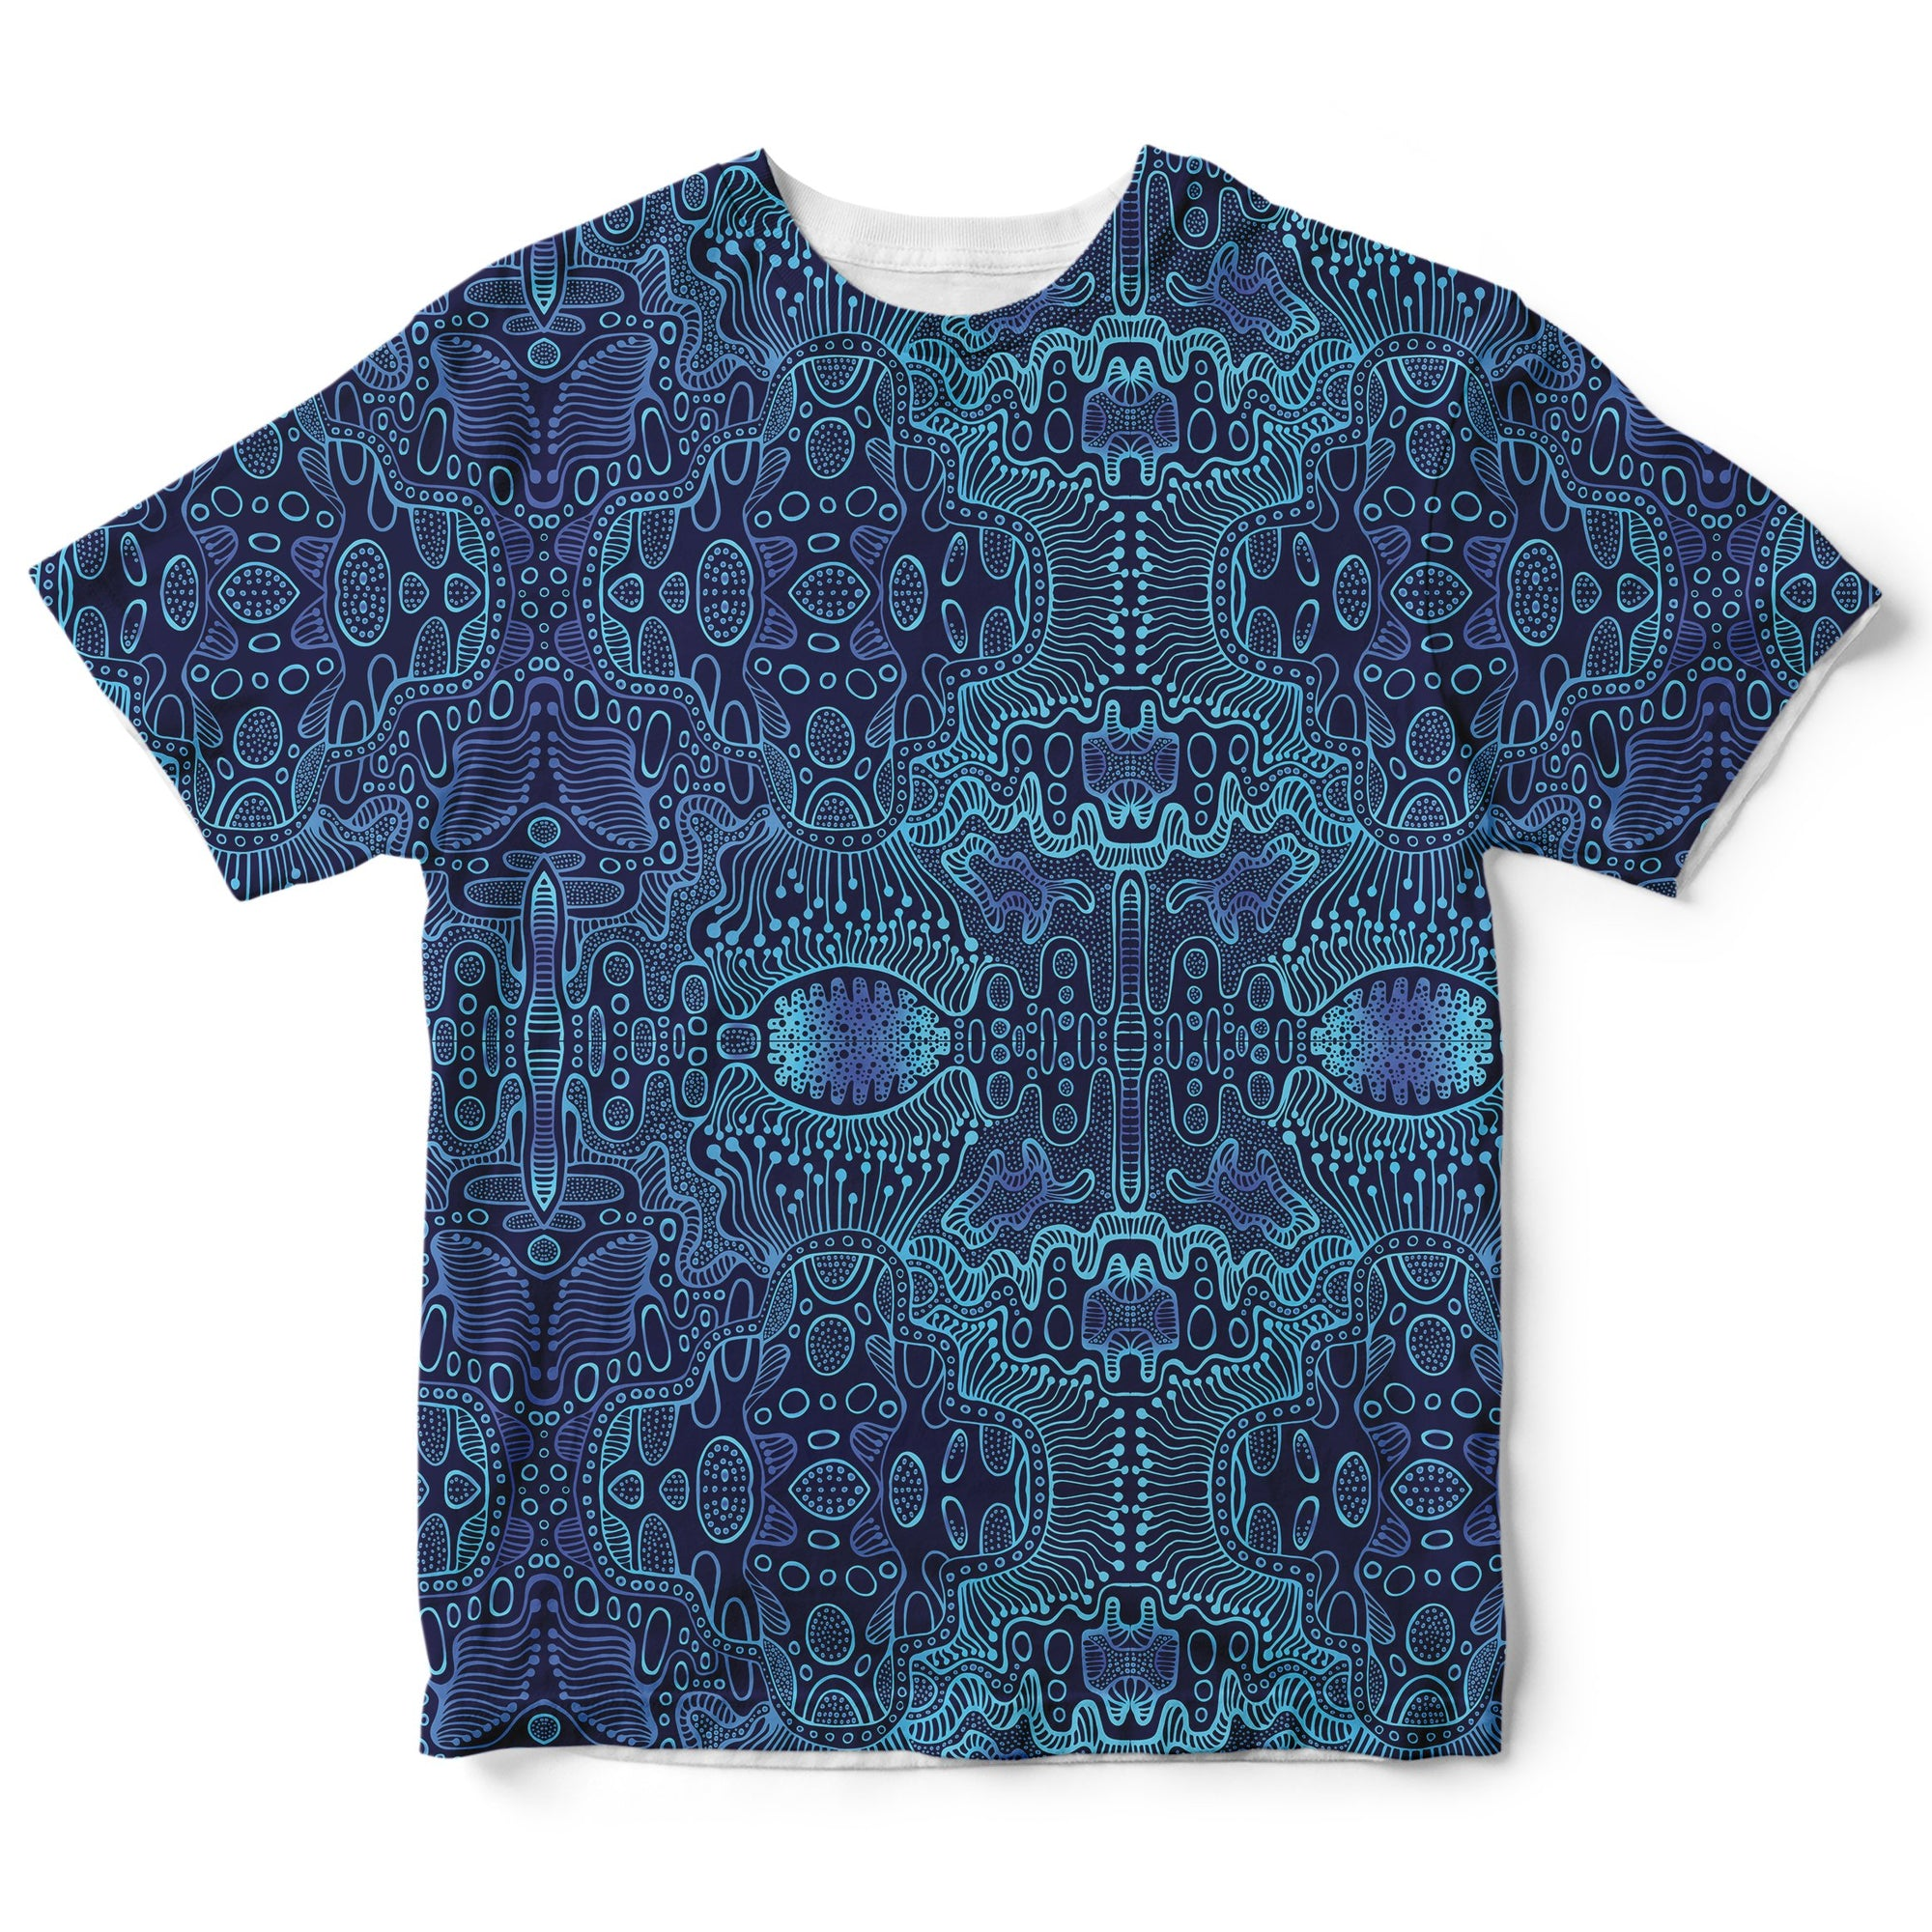 Blue Yonder Childrens Tee | Fabrifaction.com